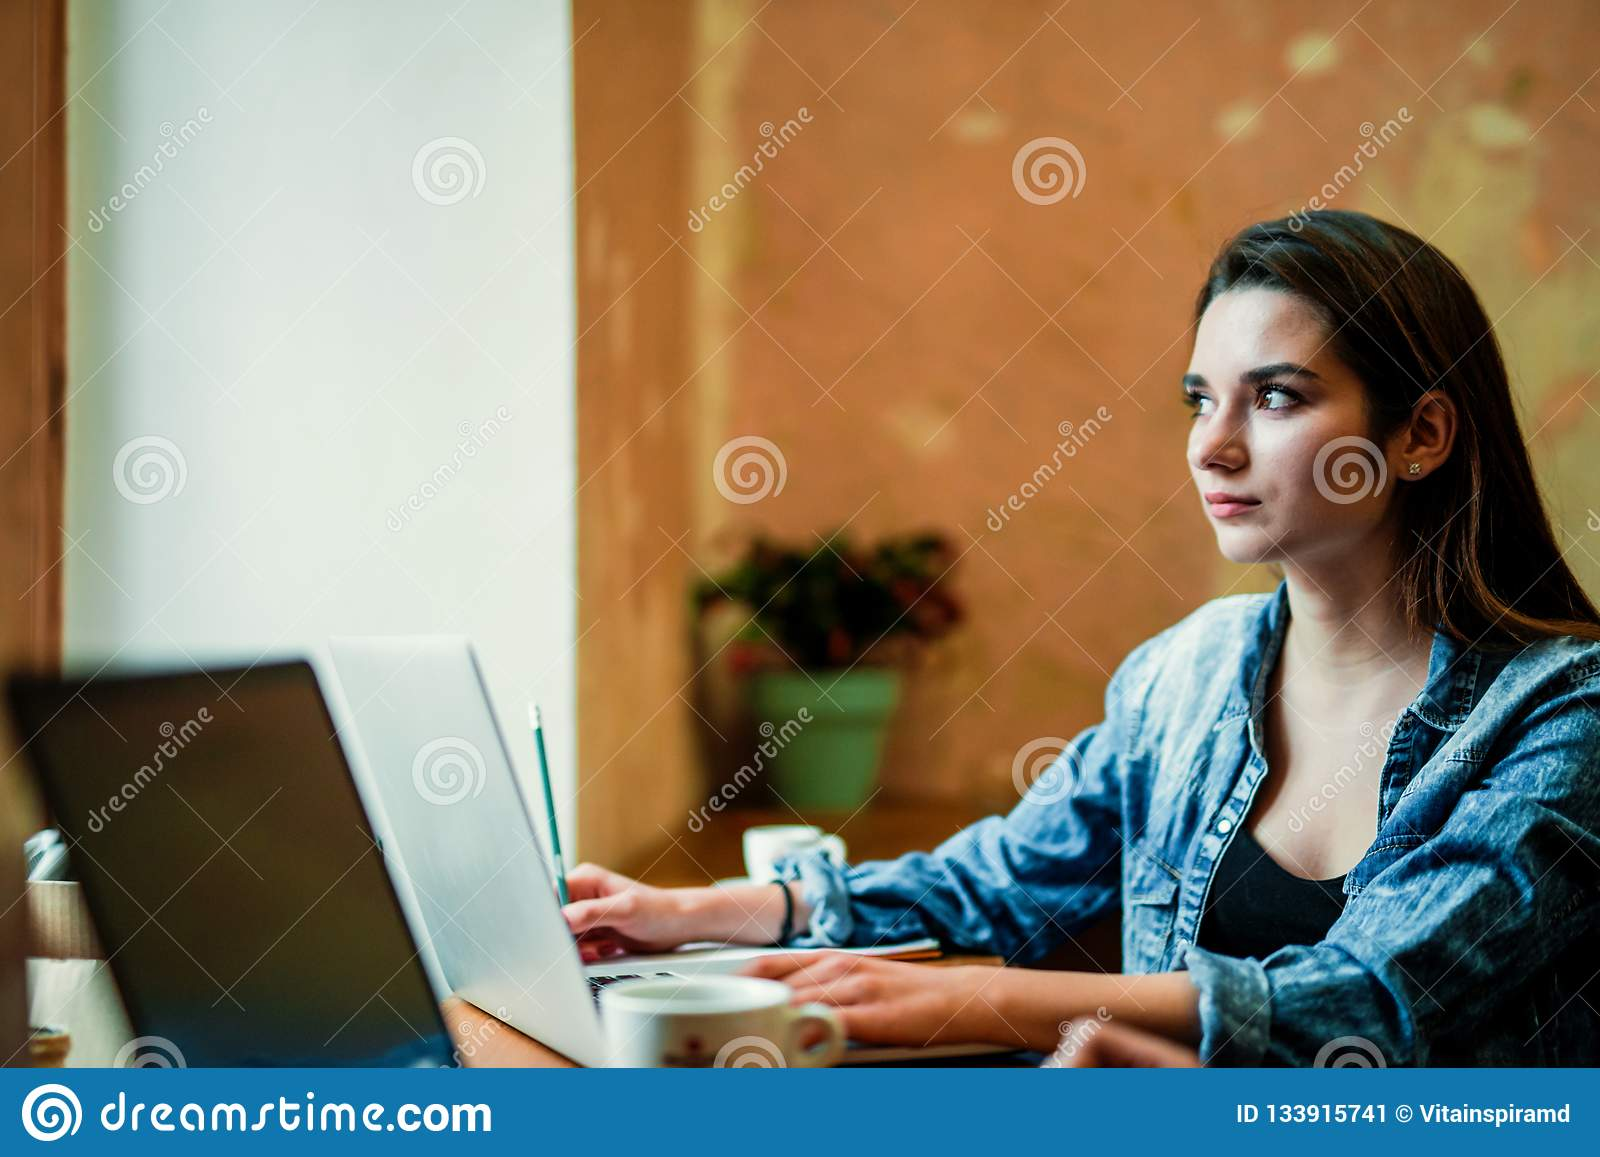 Young female student sits near the window with laptop and look through the window.